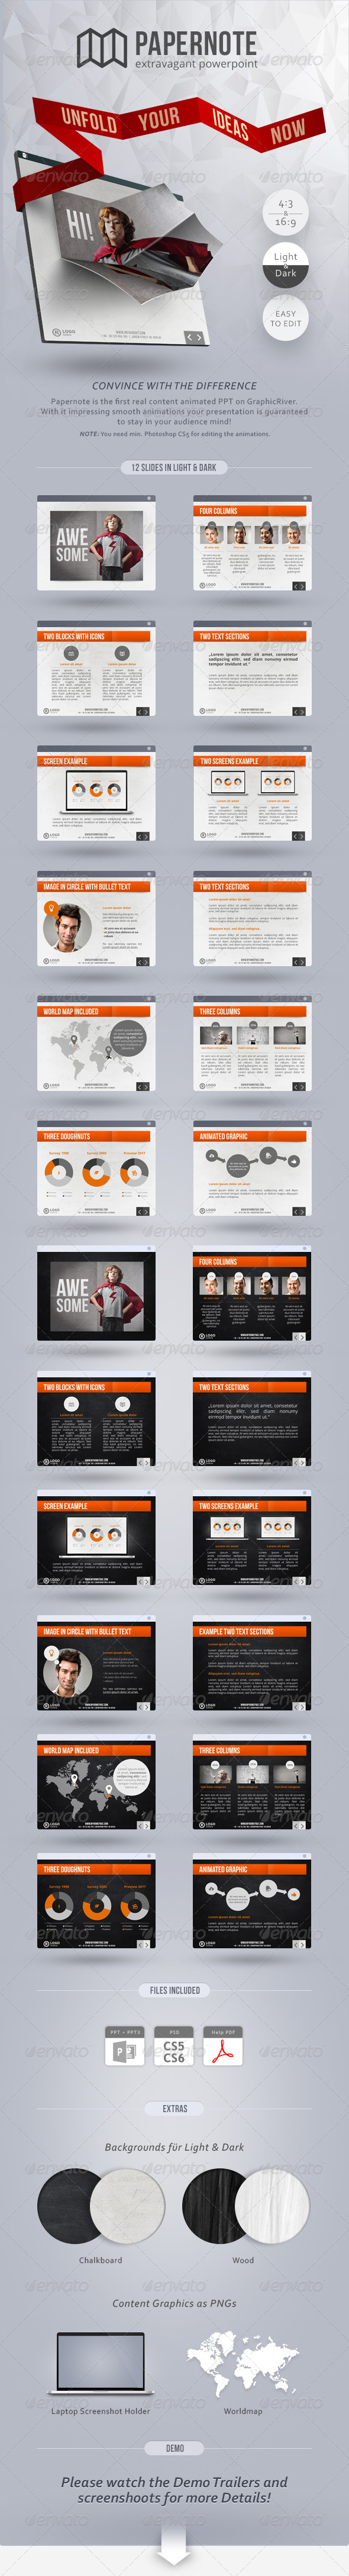 GraphicRiver Papernote Extravagant PowerPoint 4796235